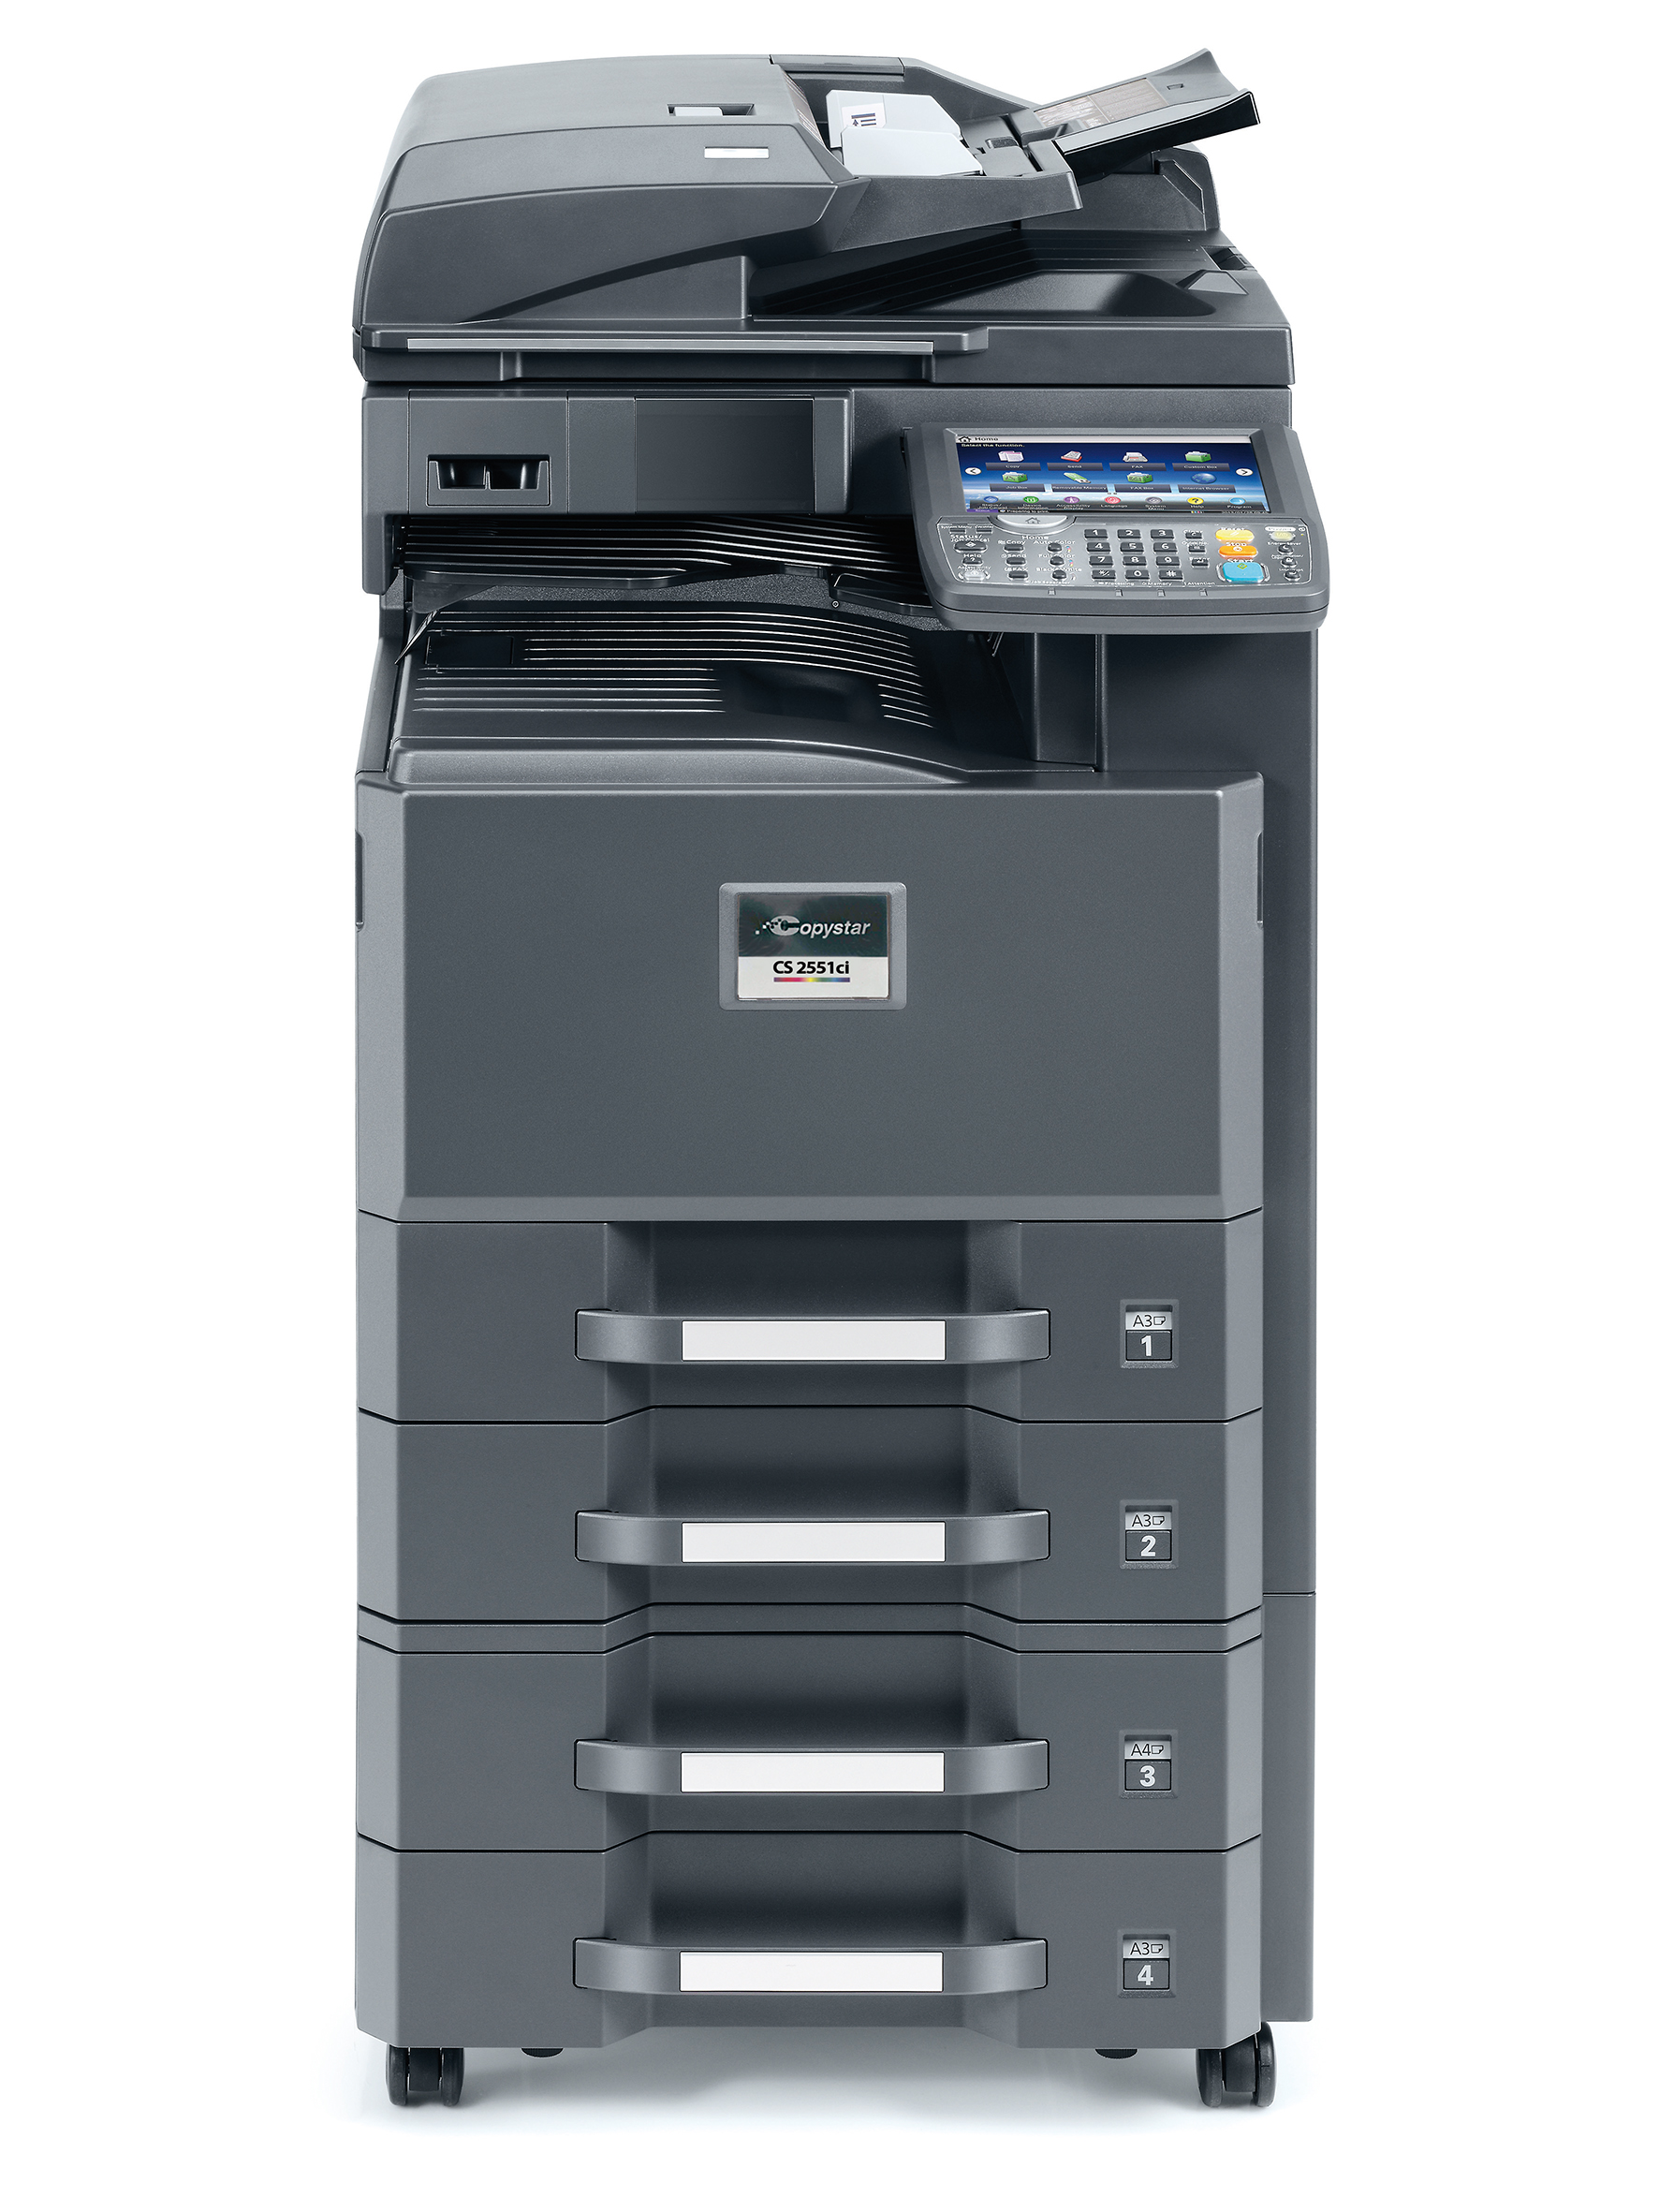 Key Office Solutions - Your Spartanburg Greenville Copier Printer Source